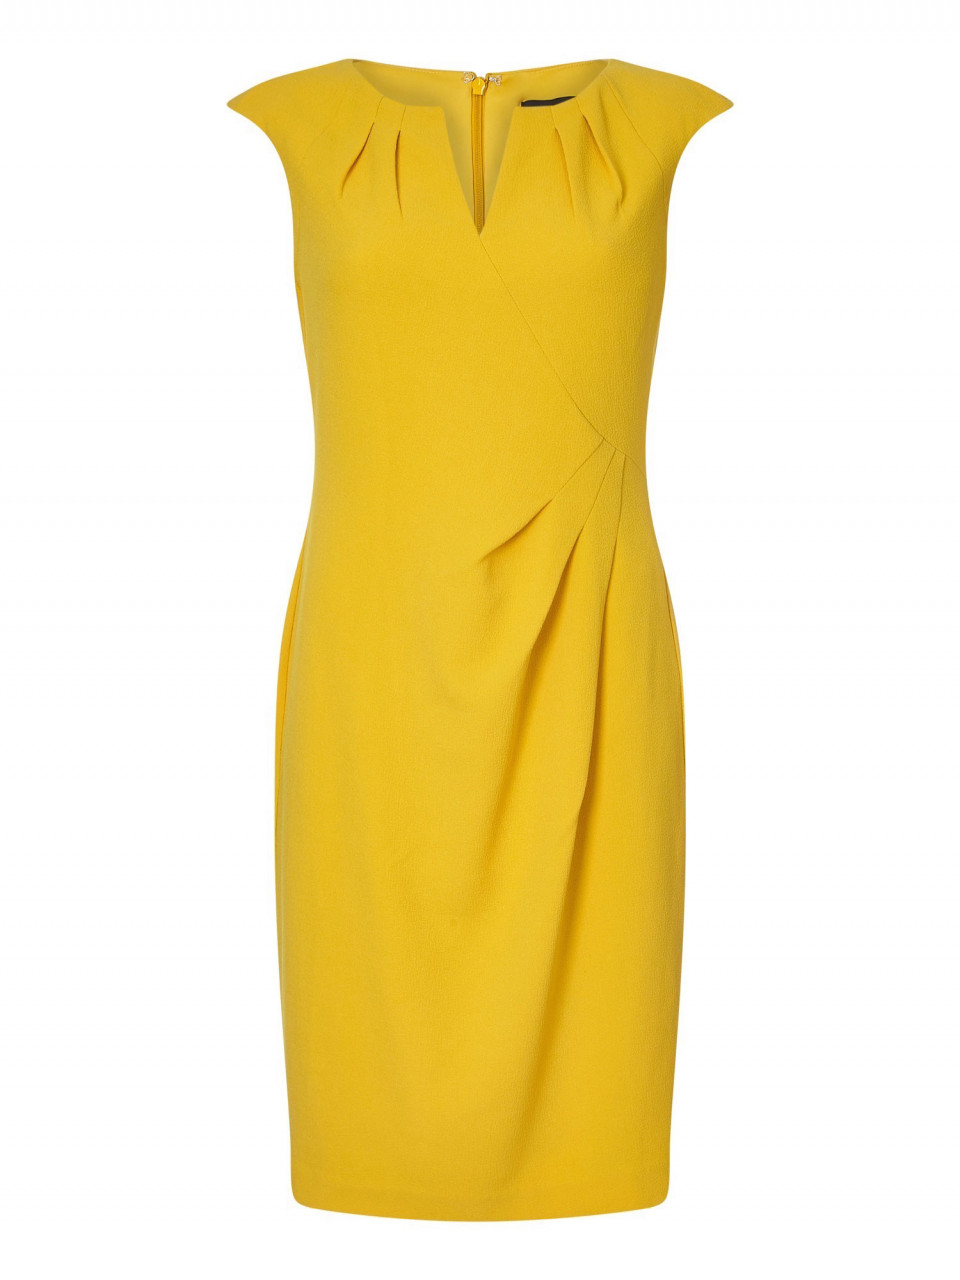 Split neck side drape sheath